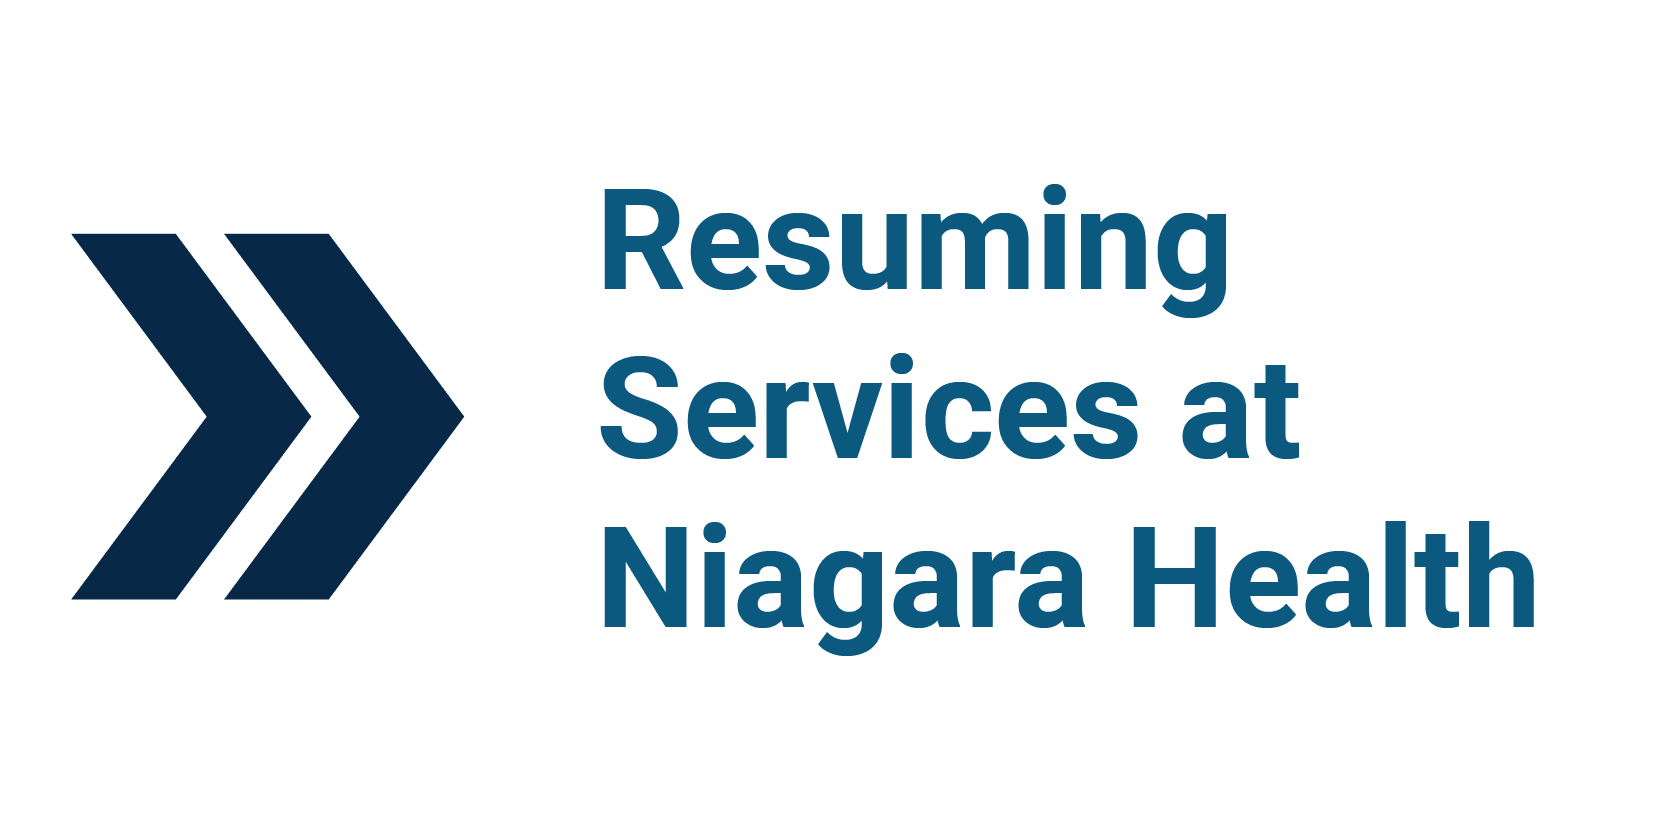 Resuming Services at Niagara Health